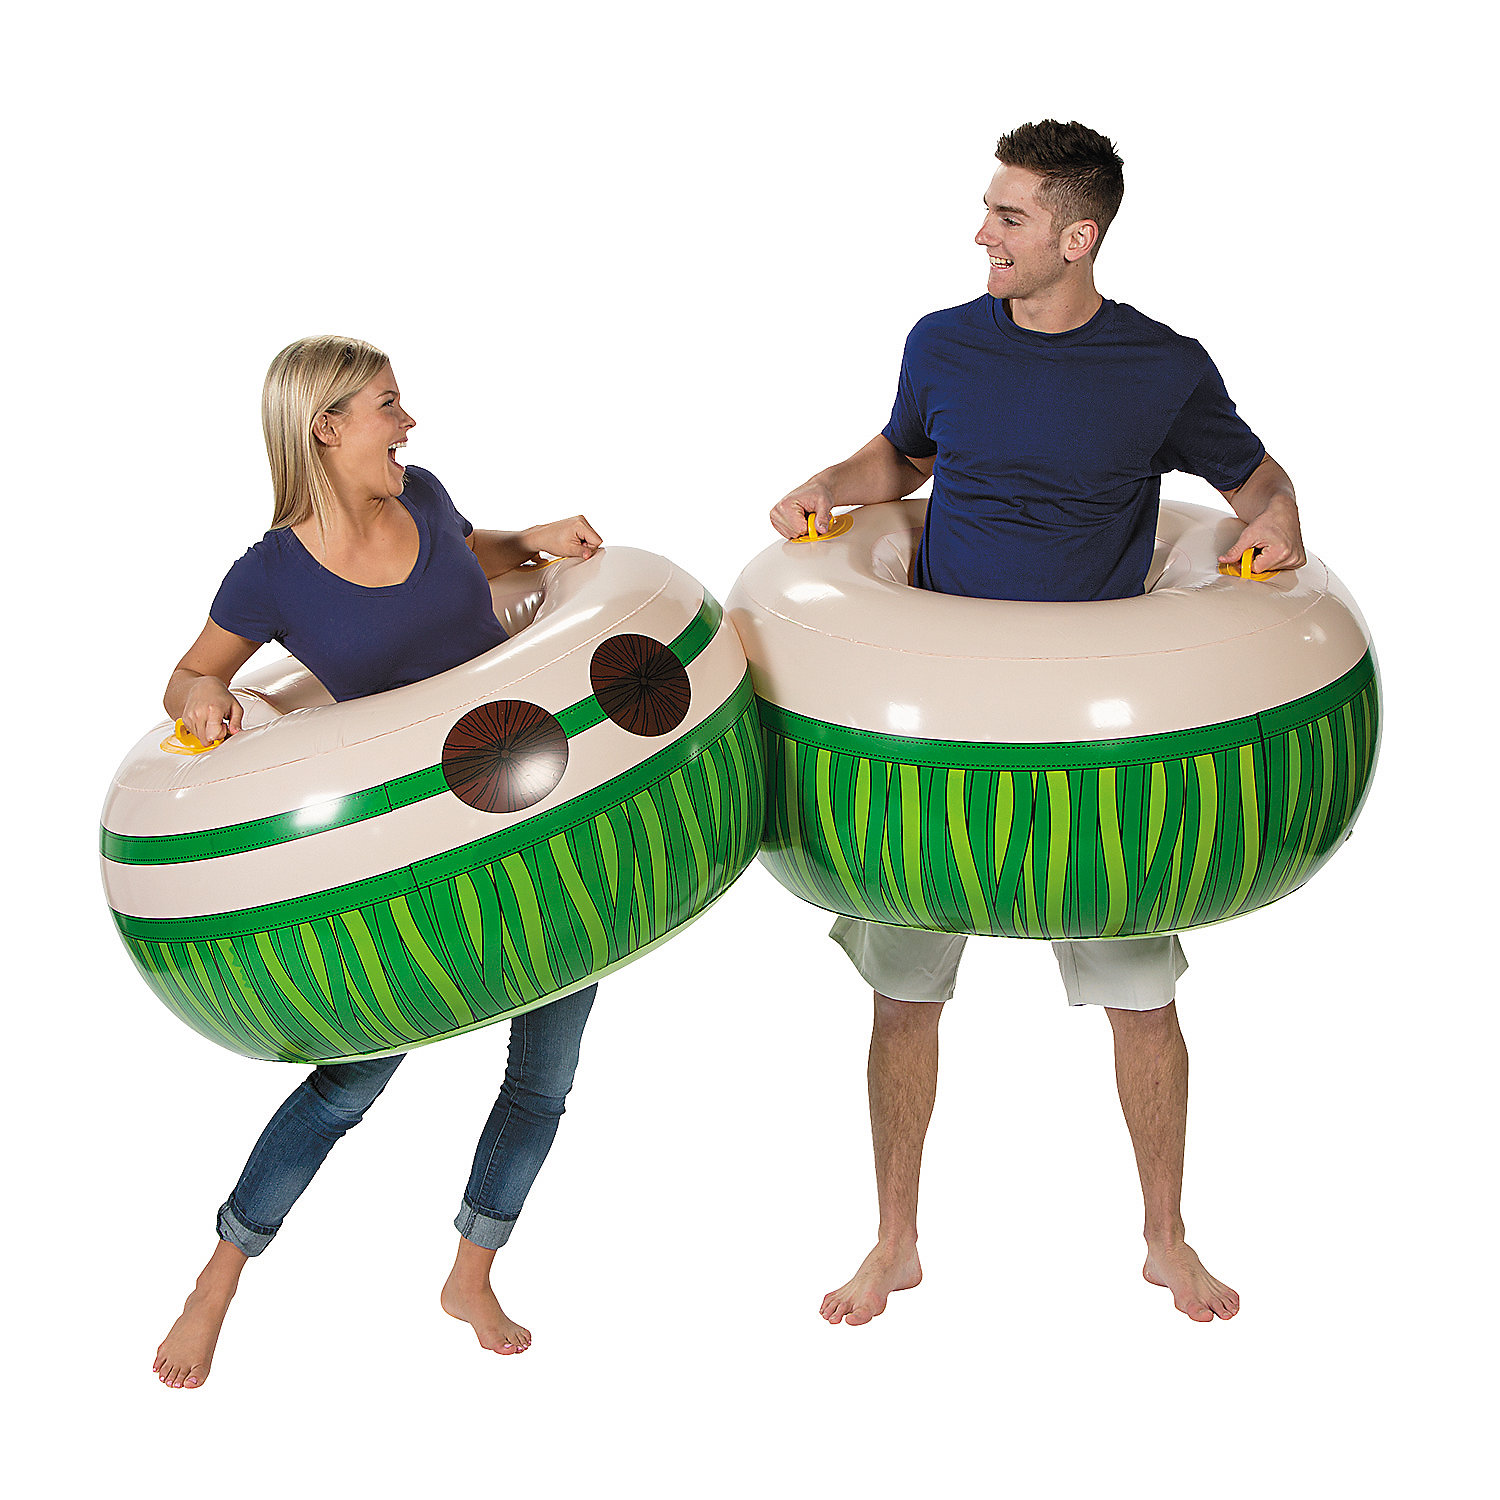 Socker Boppers Sumo: Inflatable Luau Body Boppers